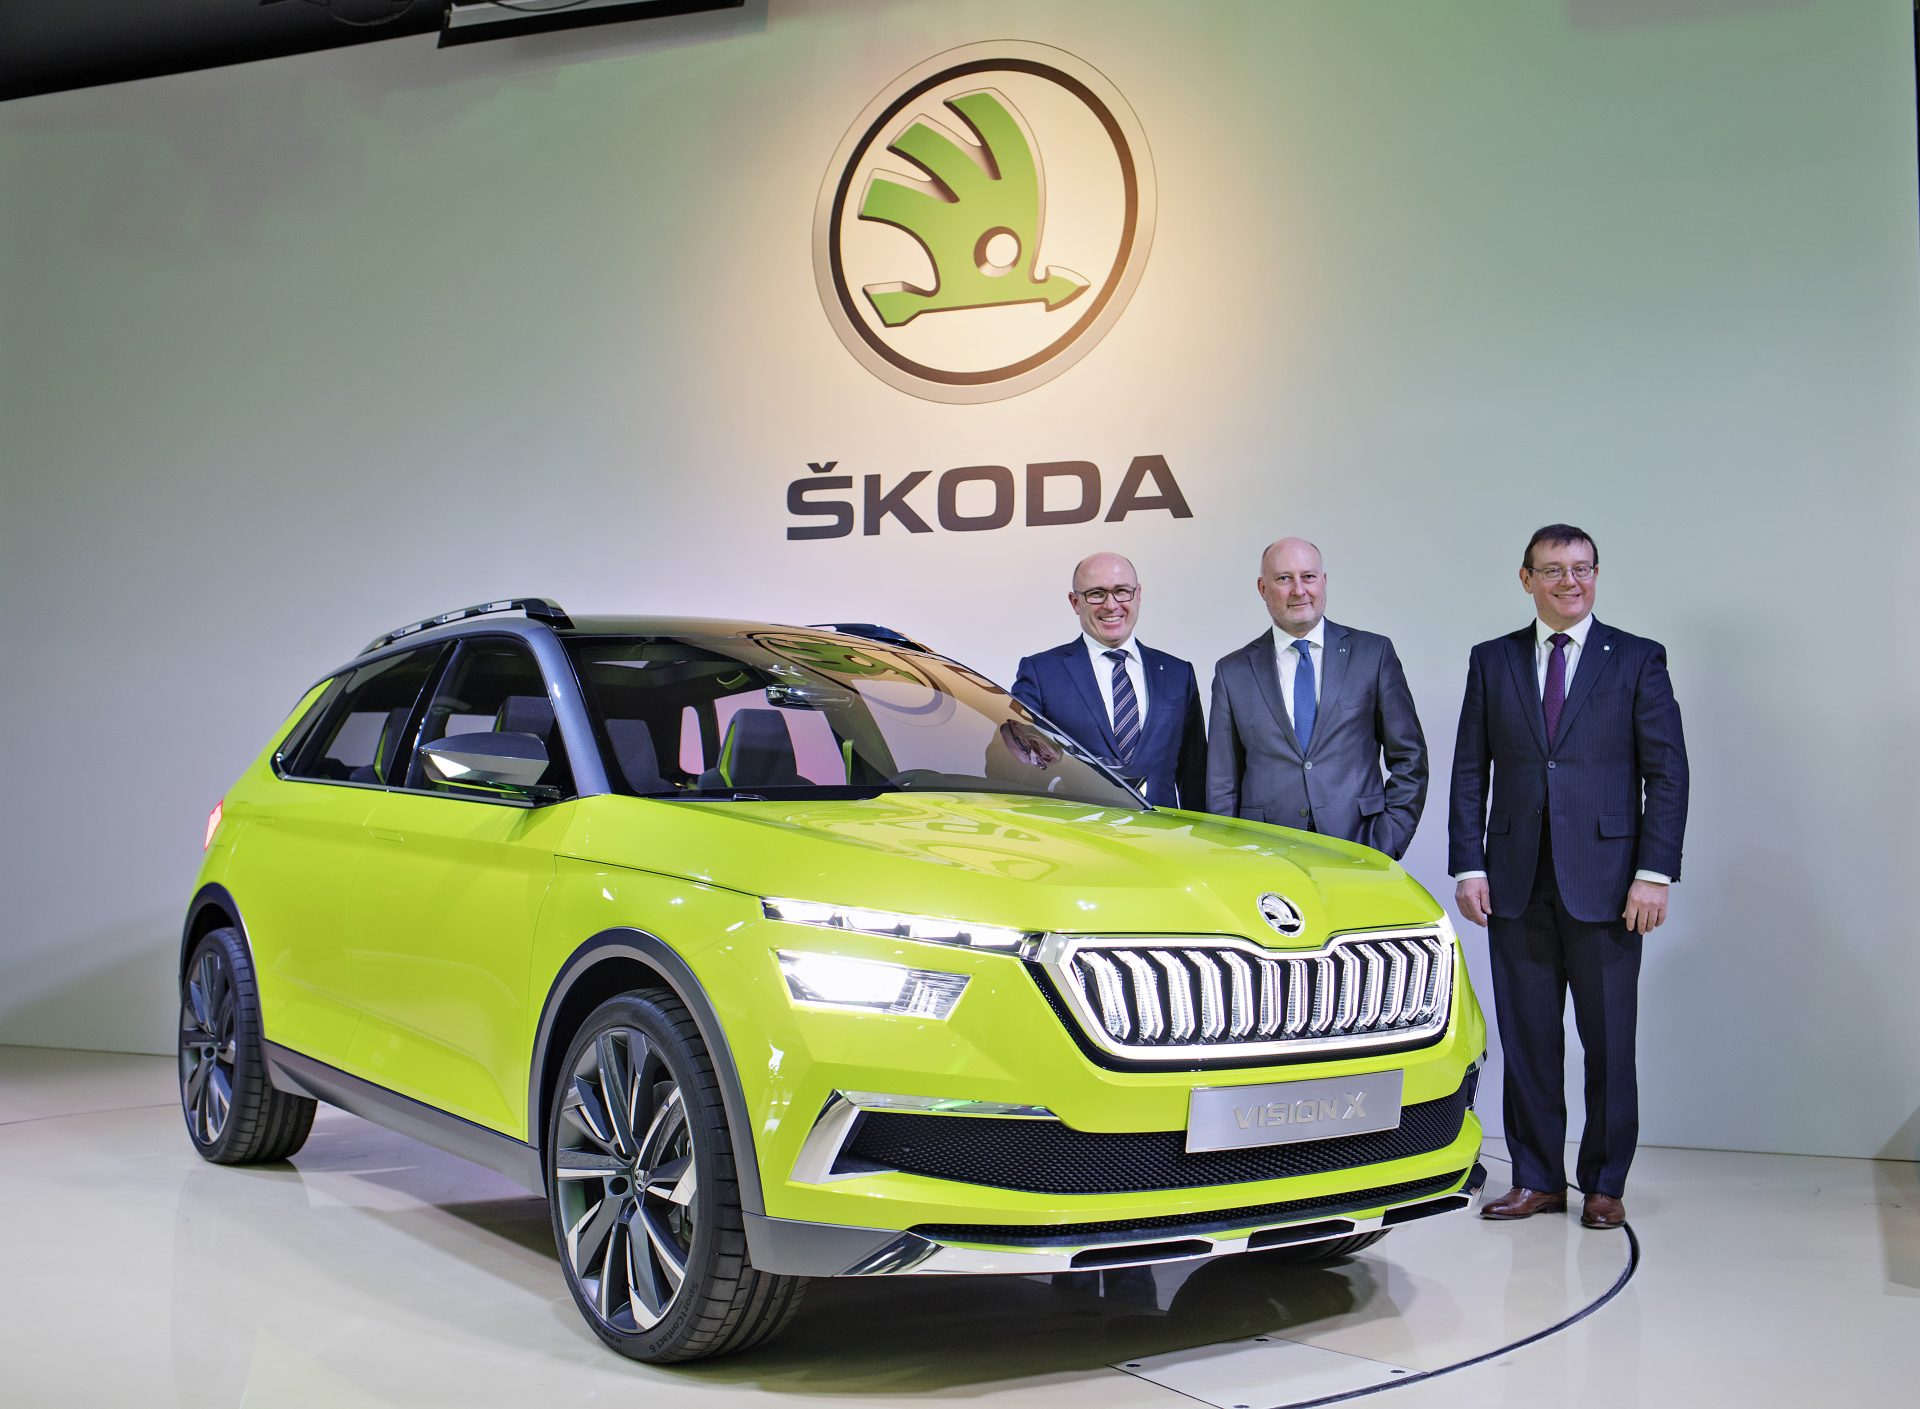 Ford Extended Warranty Cost >> Skoda confirms MQB A0 platform for India - Autocar India